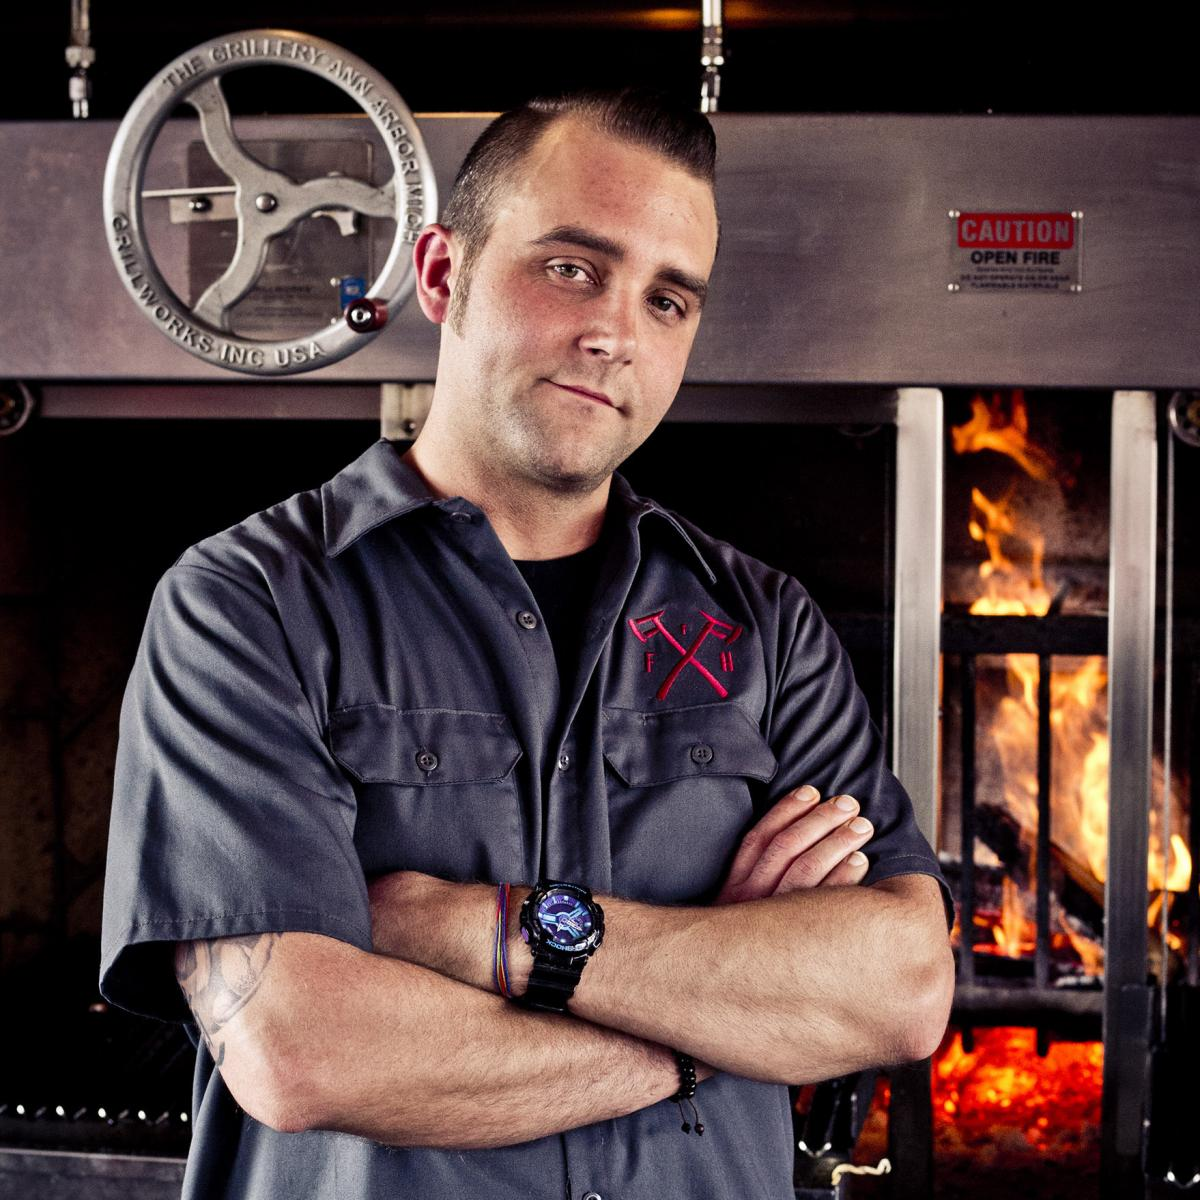 Aaron Cozadd, executive chef for Union Joints restaurant group